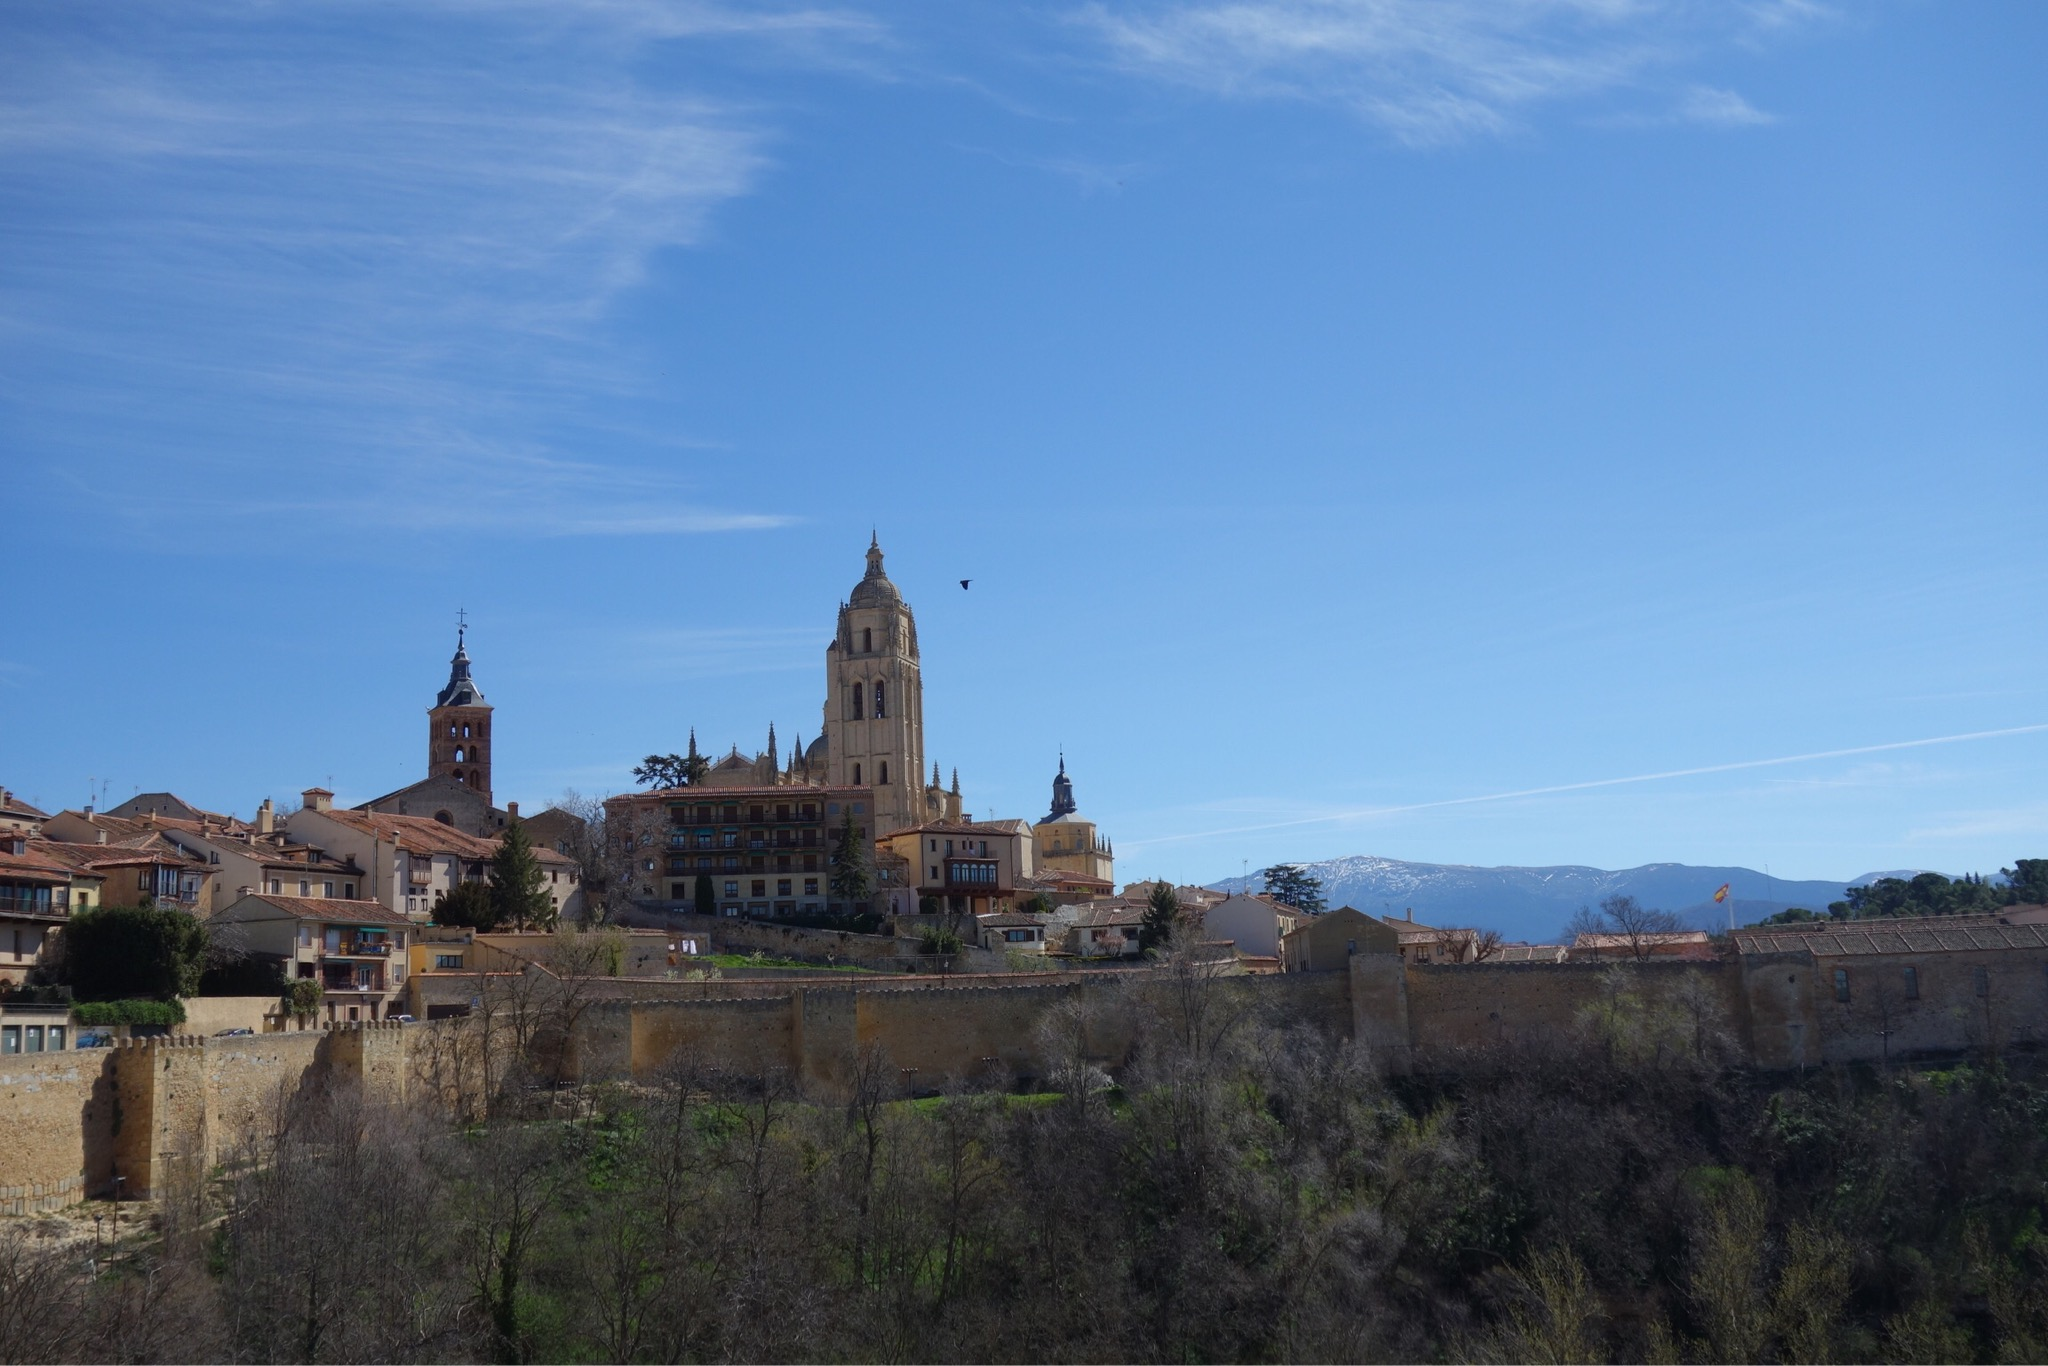 View of the Cathedral in Segovia